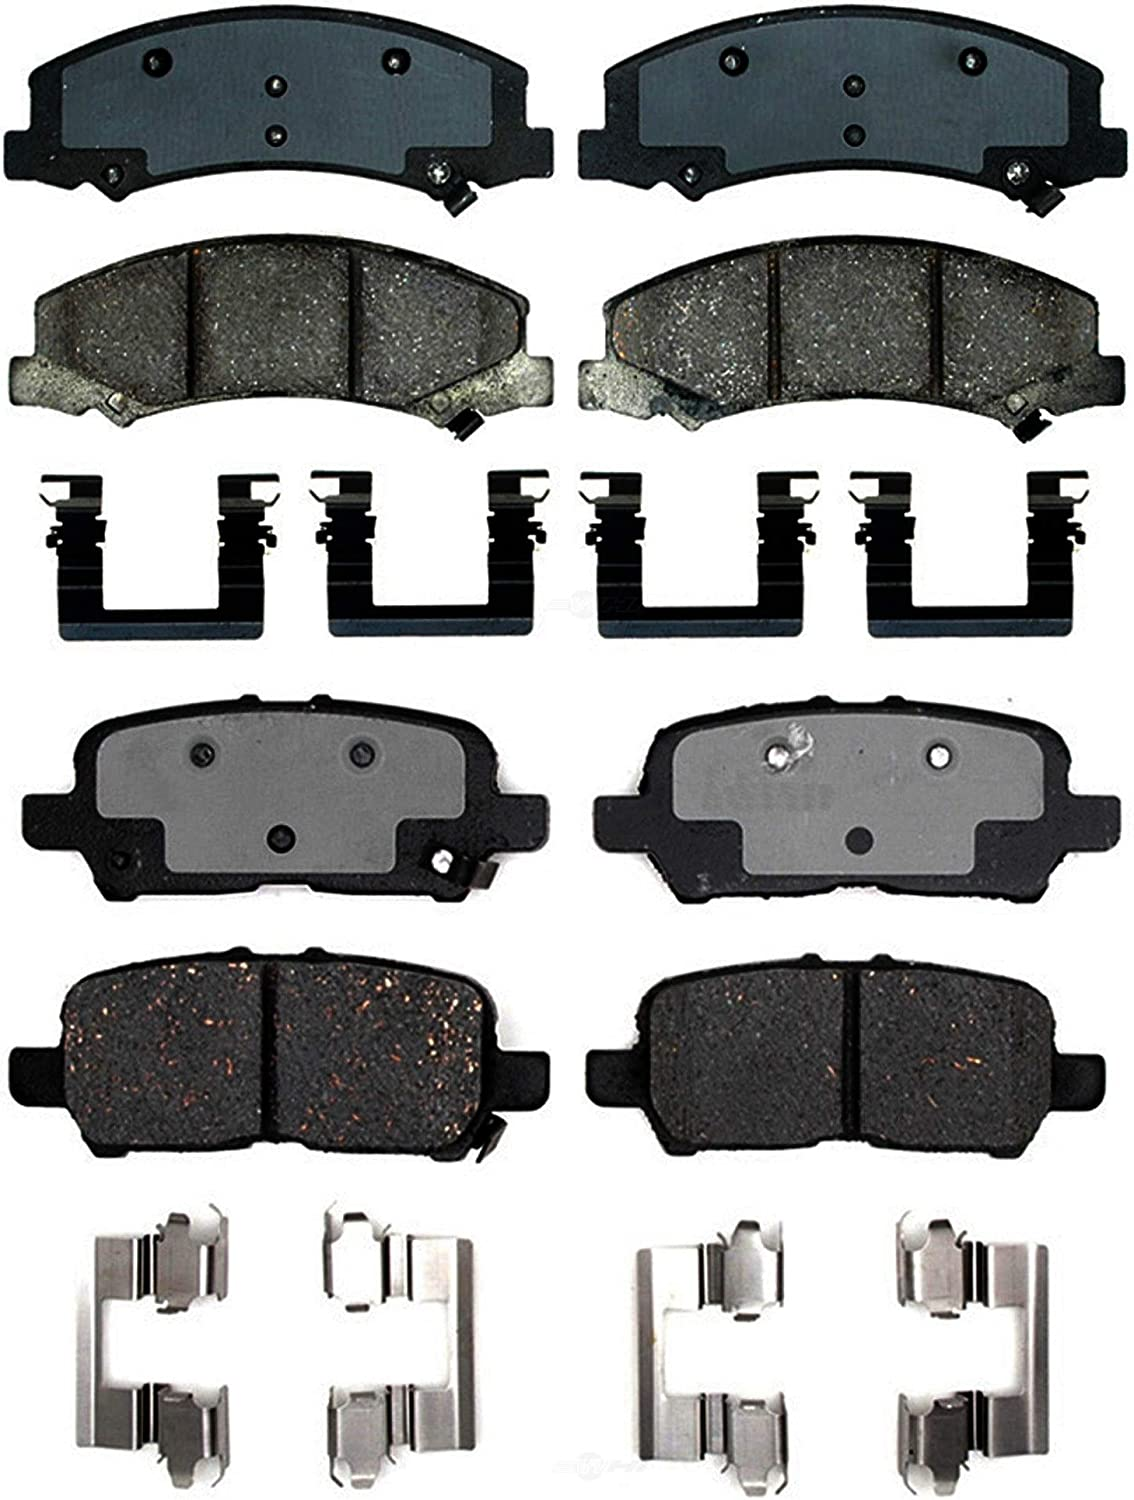 Max 89% OFF Front Rear Ceramic Brake Pad Sets Kit Pro For Chevy ...